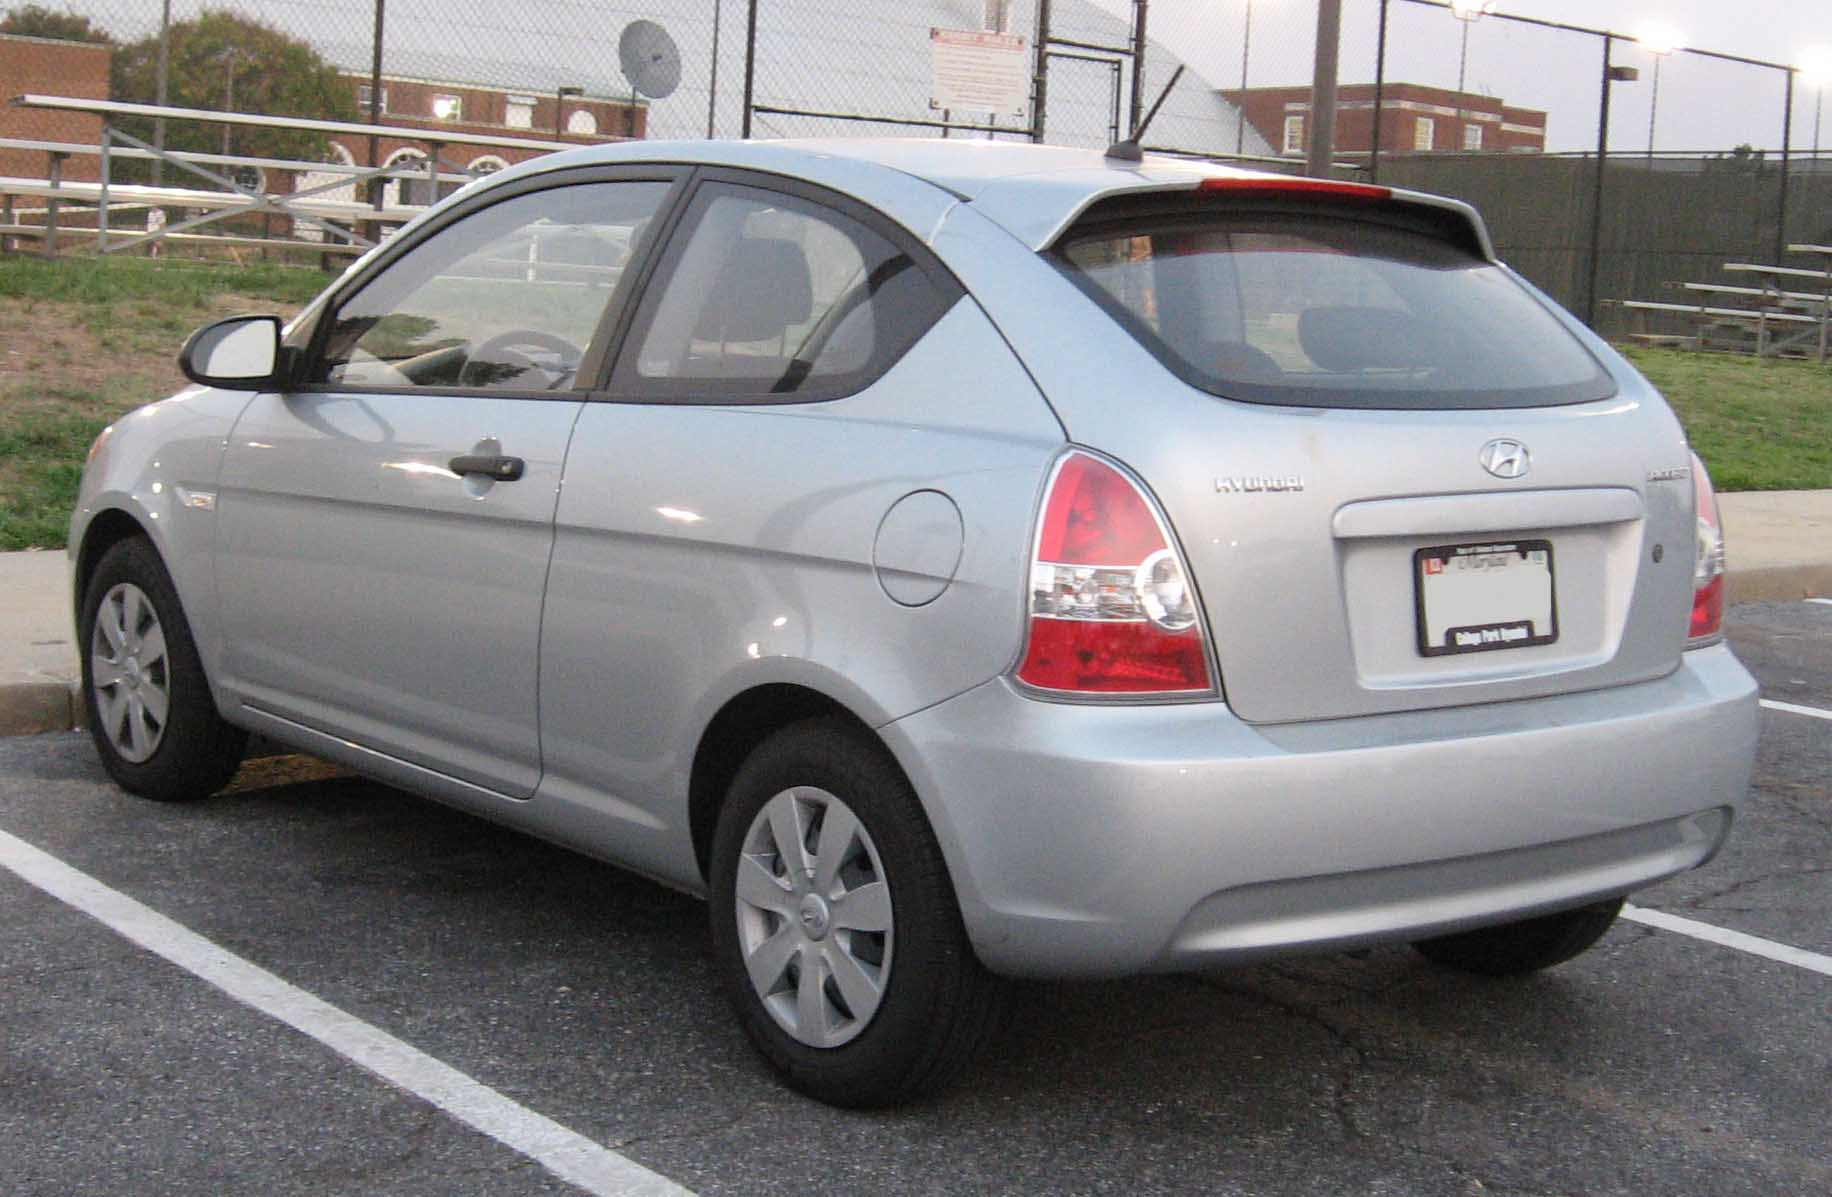 File Hyundai Accent Hatchback Rear 2 Jpg Wikimedia Commons